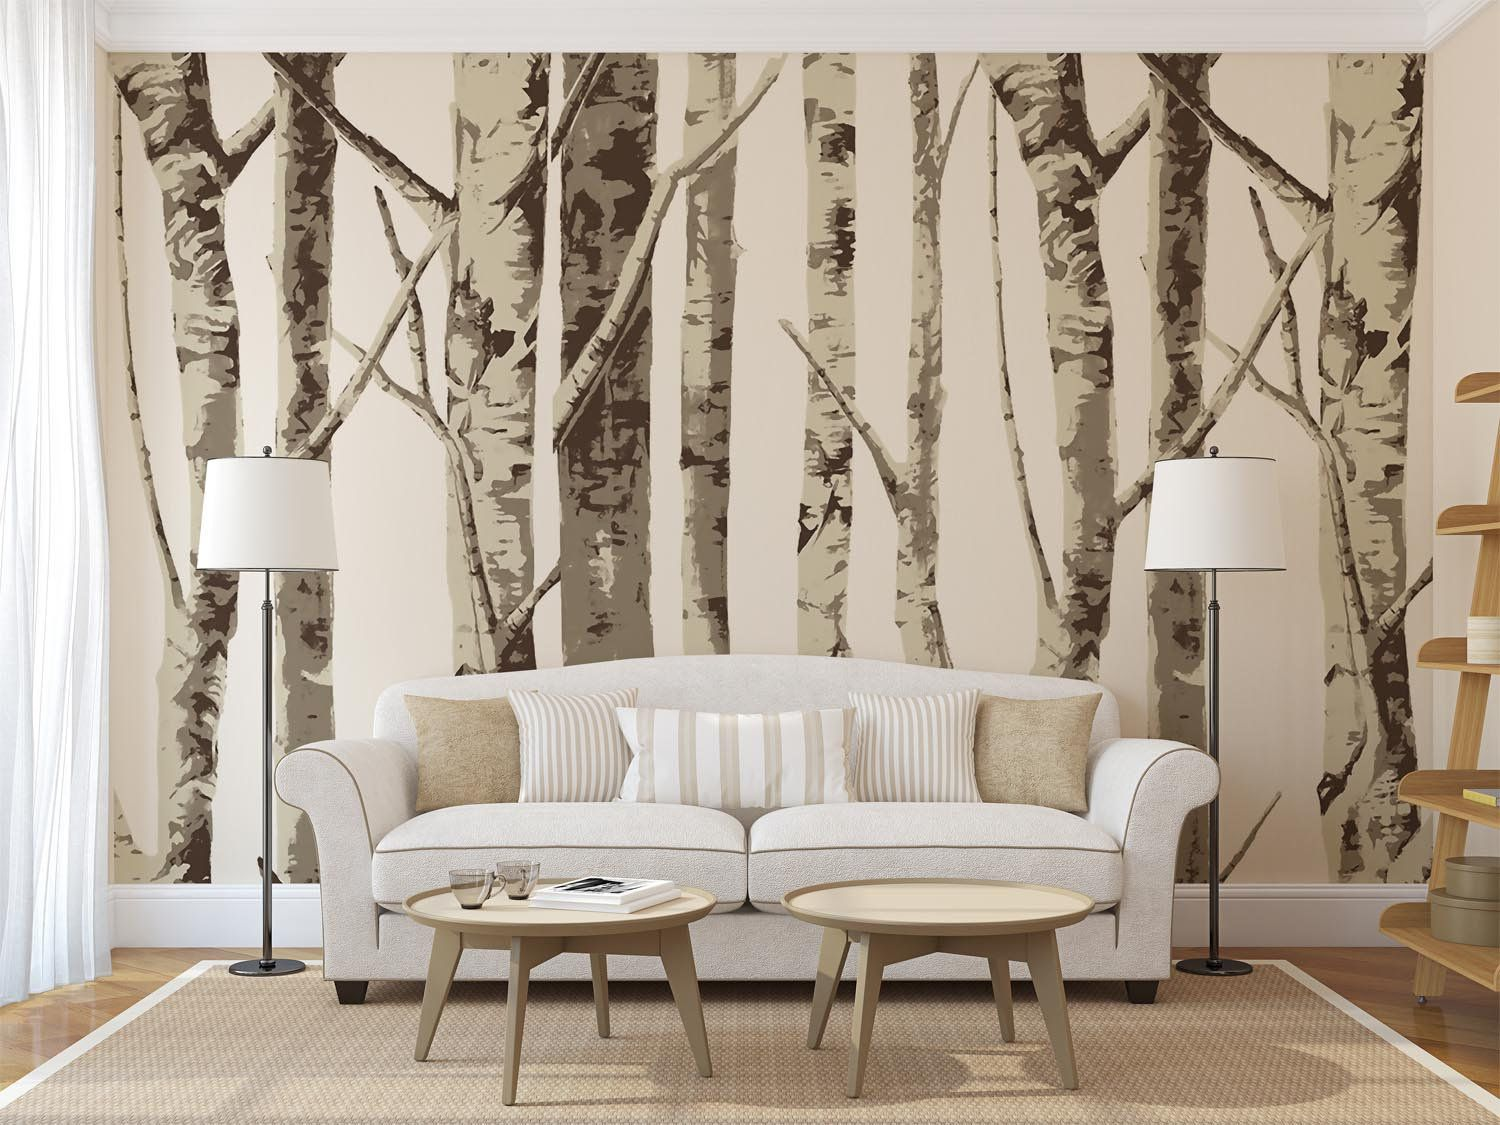 Best Gray Birch Tree Wallpaper Removable Forest Wall Paper Home Bedroom Wall Decor Decal Peel And 640 x 480